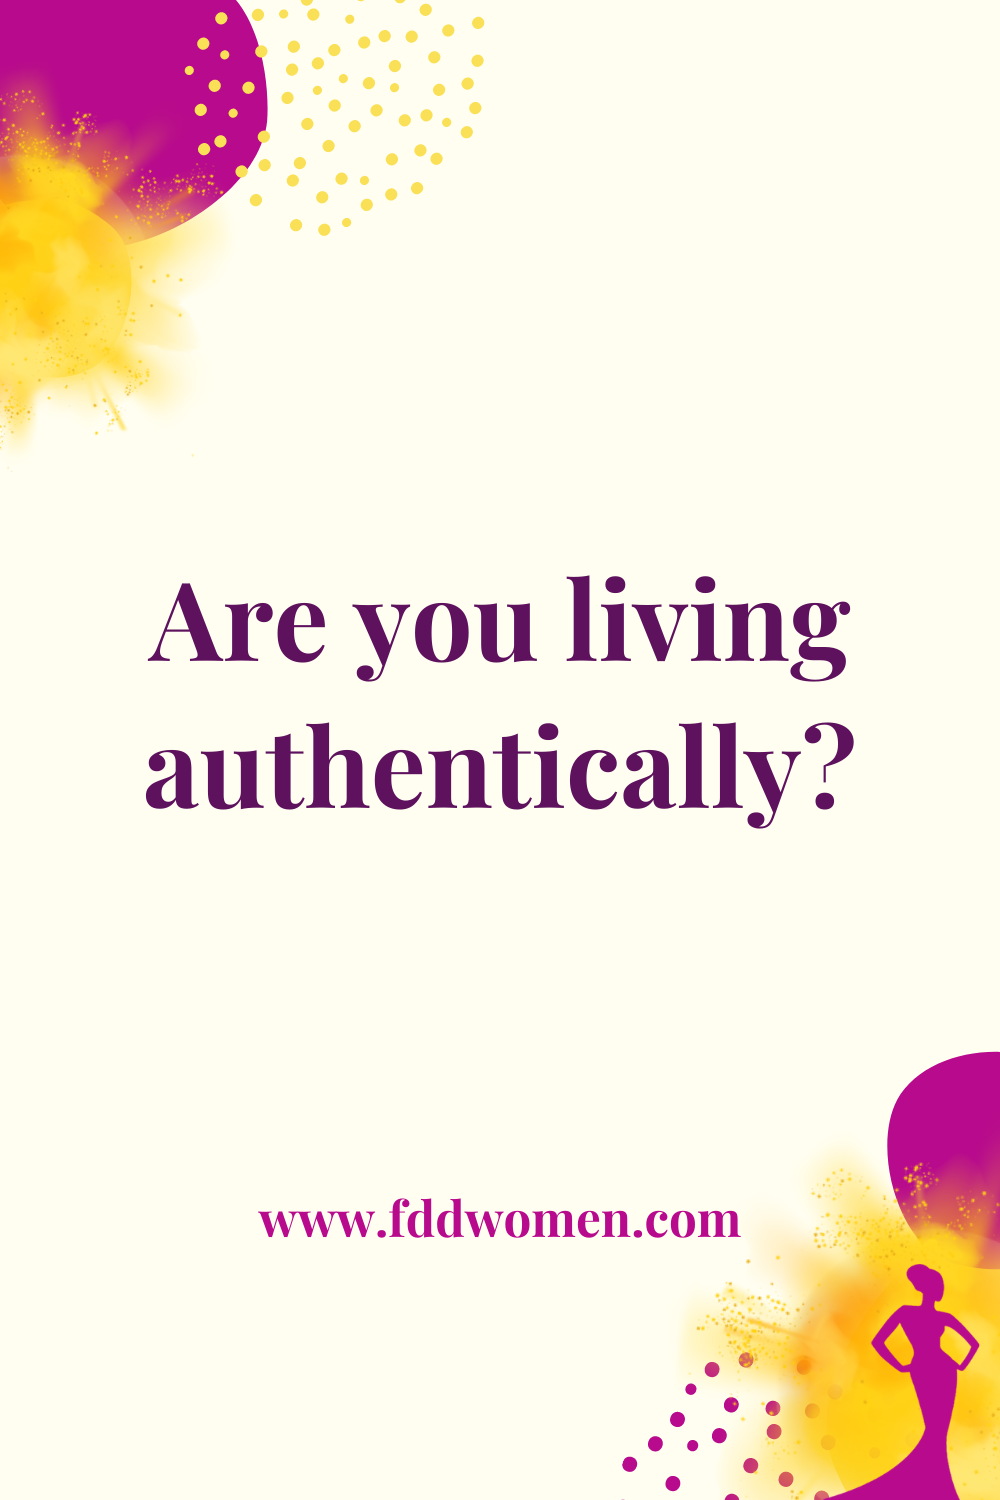 Are you showing your true, authentic self when you engage with people? #happiness #relationships #liveauthentically #Festadelladonna #Liveyourlife